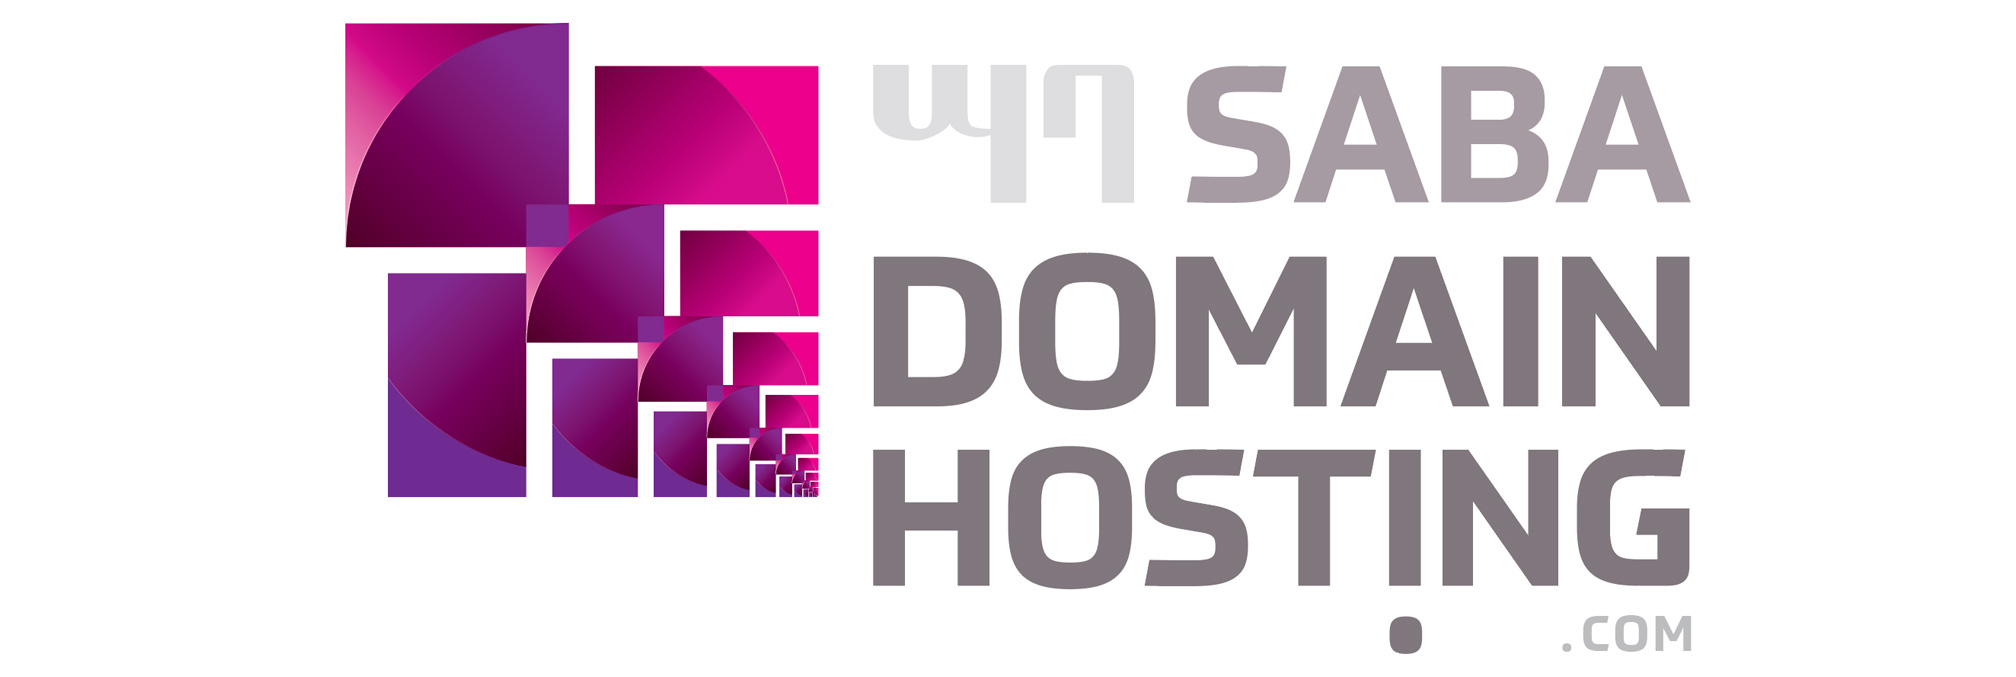 Saba Domains & Hosting - A Division of SabaDesigns.com